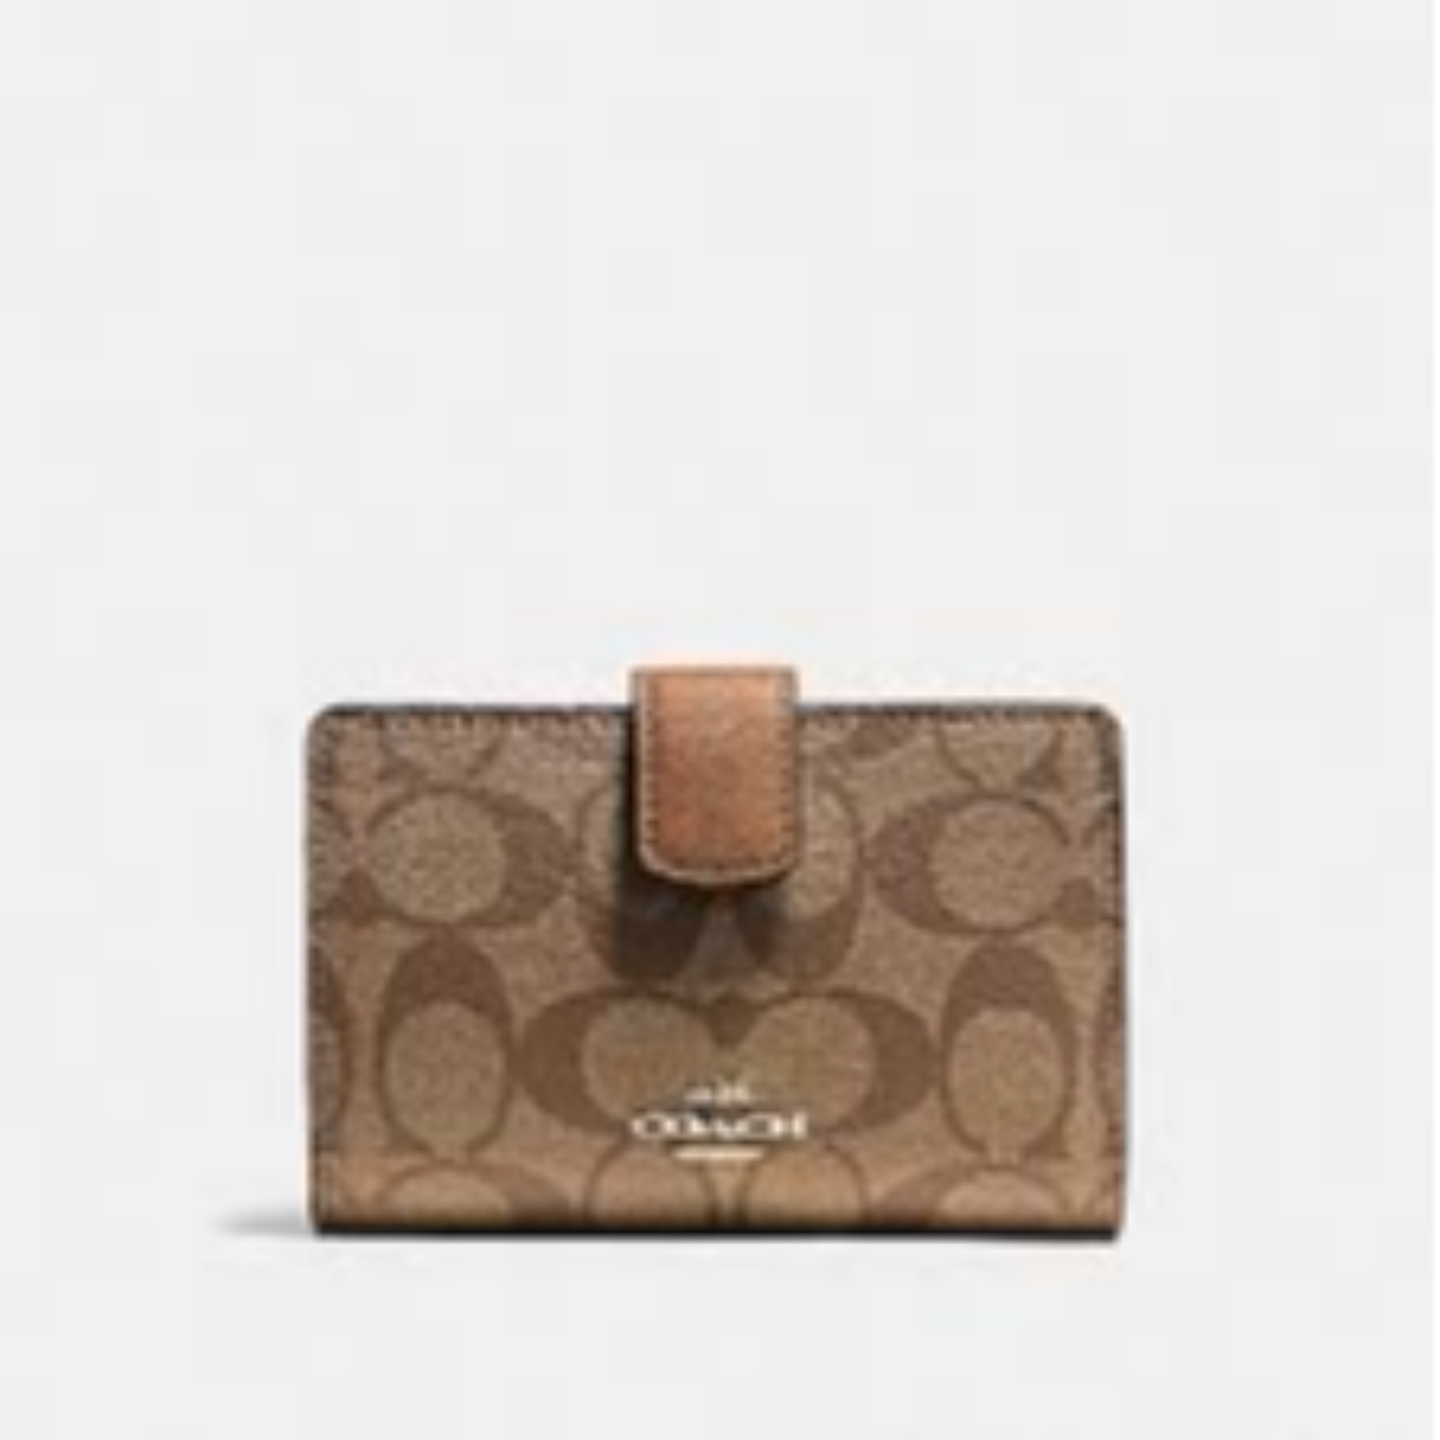 Coach Ladies Wallet MEDIUM CORNER ZIP CROSSGRAIN LEATHER COACH F53436 Brown Style